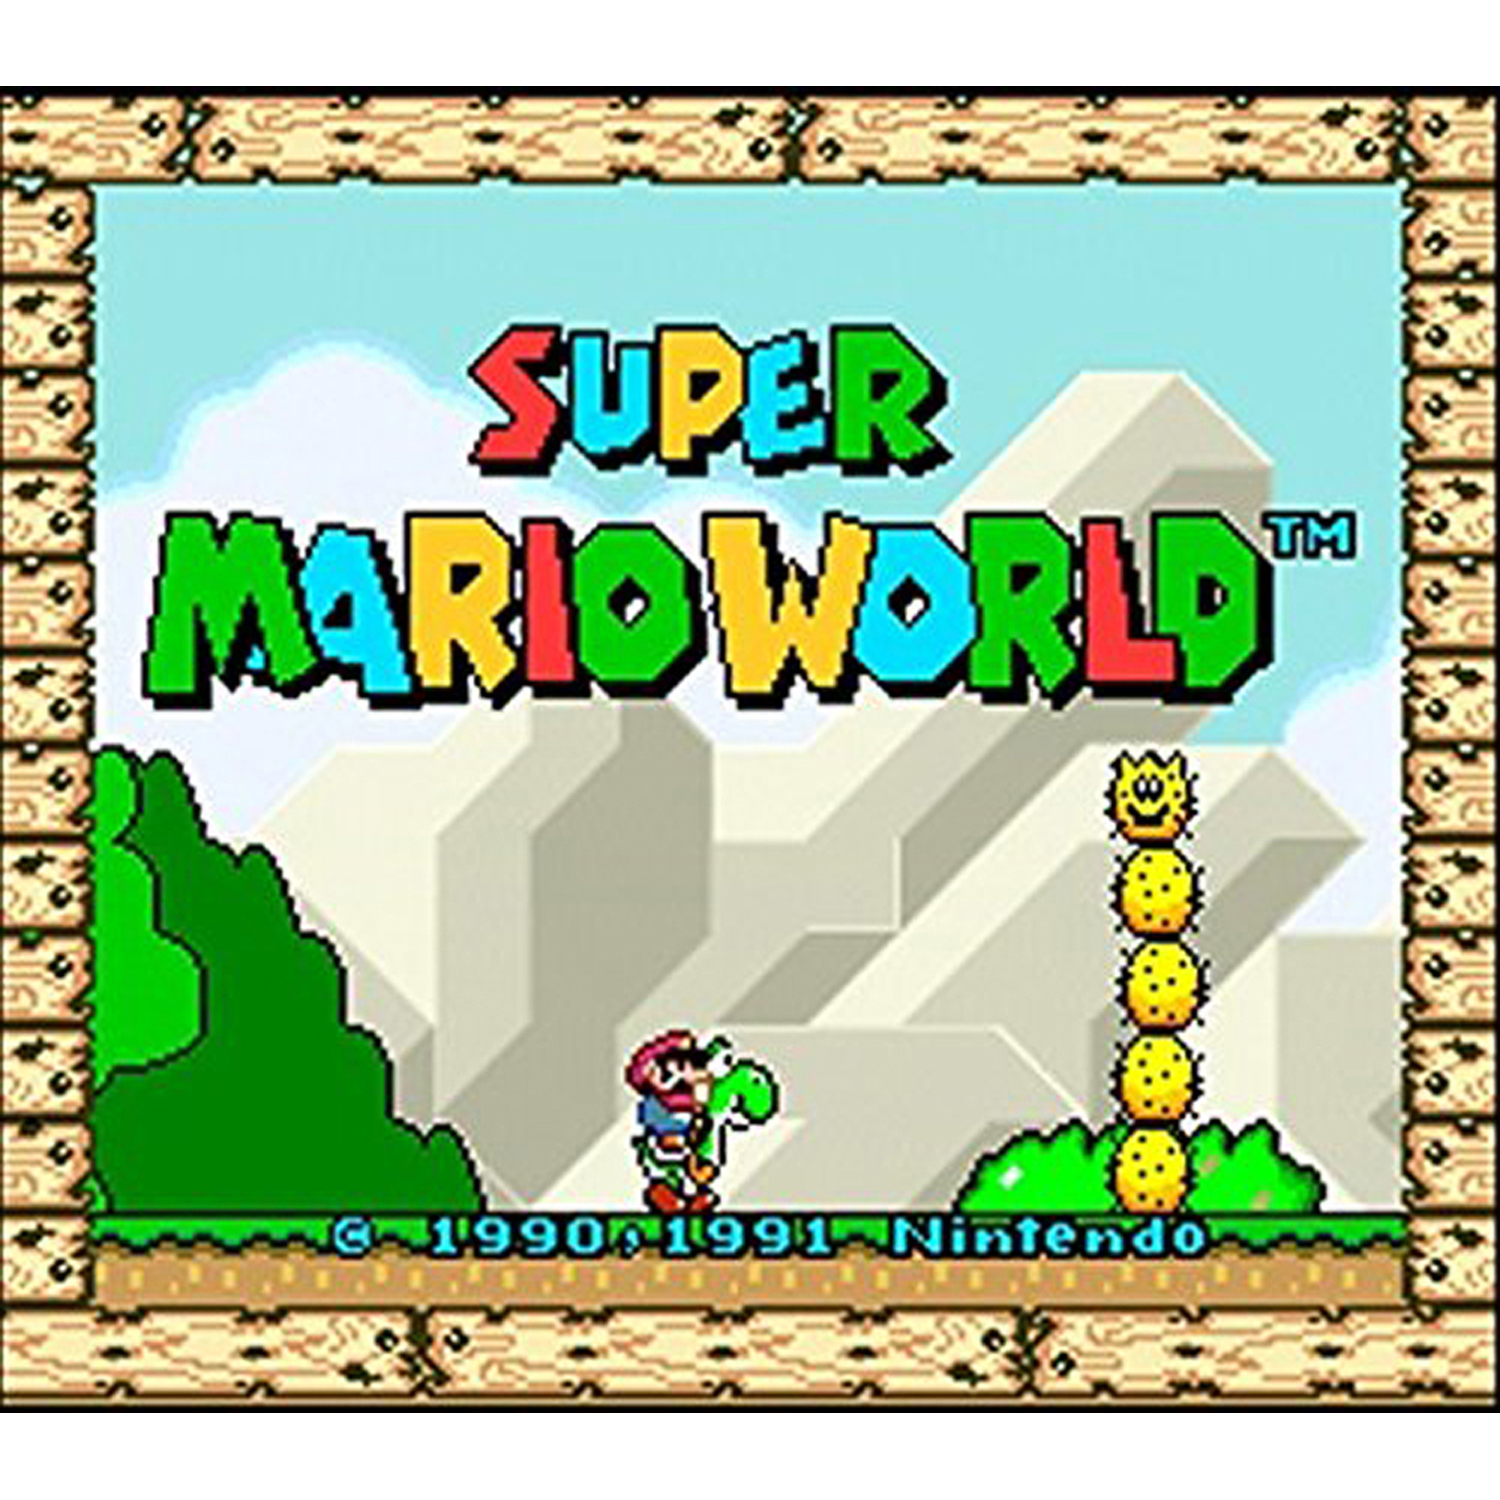 Super Mario World, Nintendo, WIIU, [Digital Download], 0004549666015